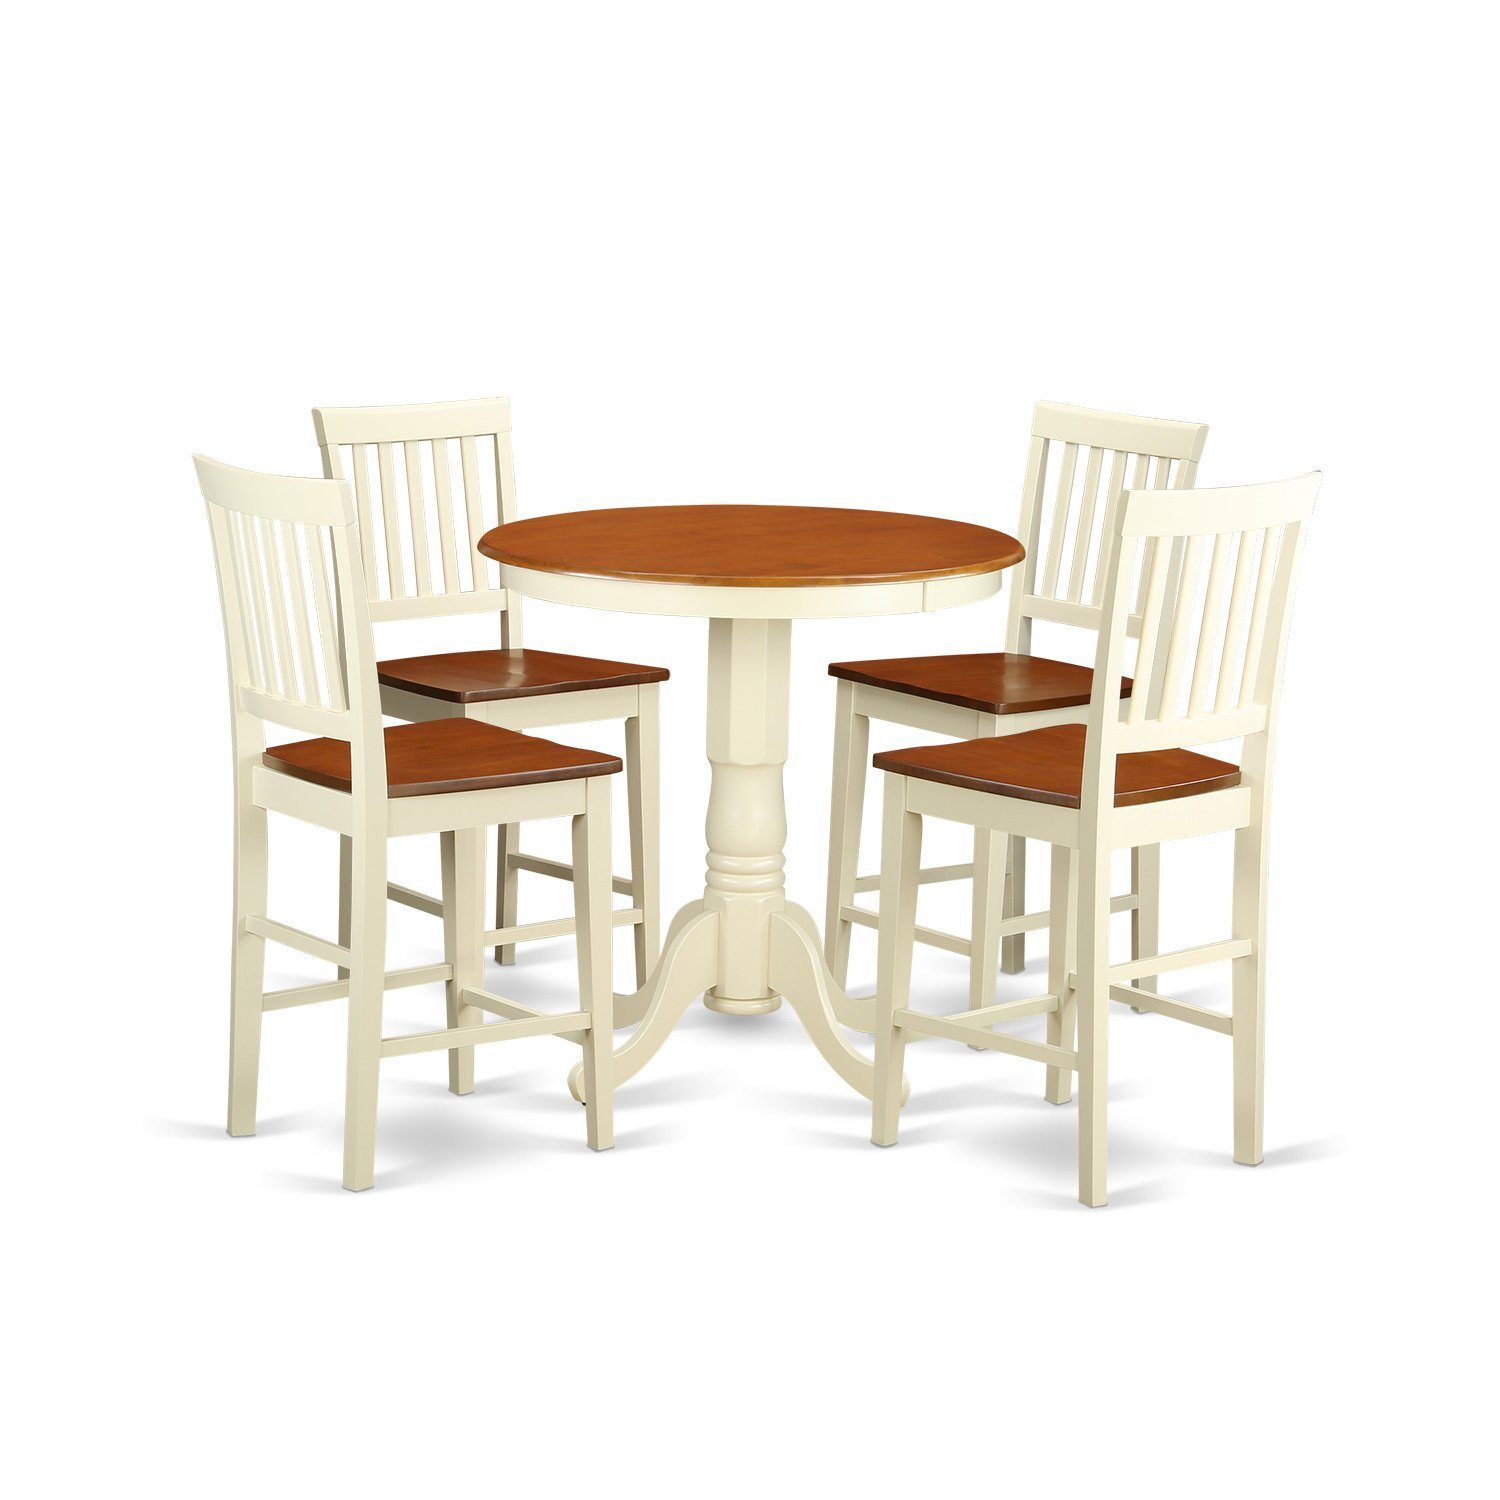 East West Furniture EDVN5-WHI-W 5 Piece Pub Table and 4 Kitchen Bar Stool Set